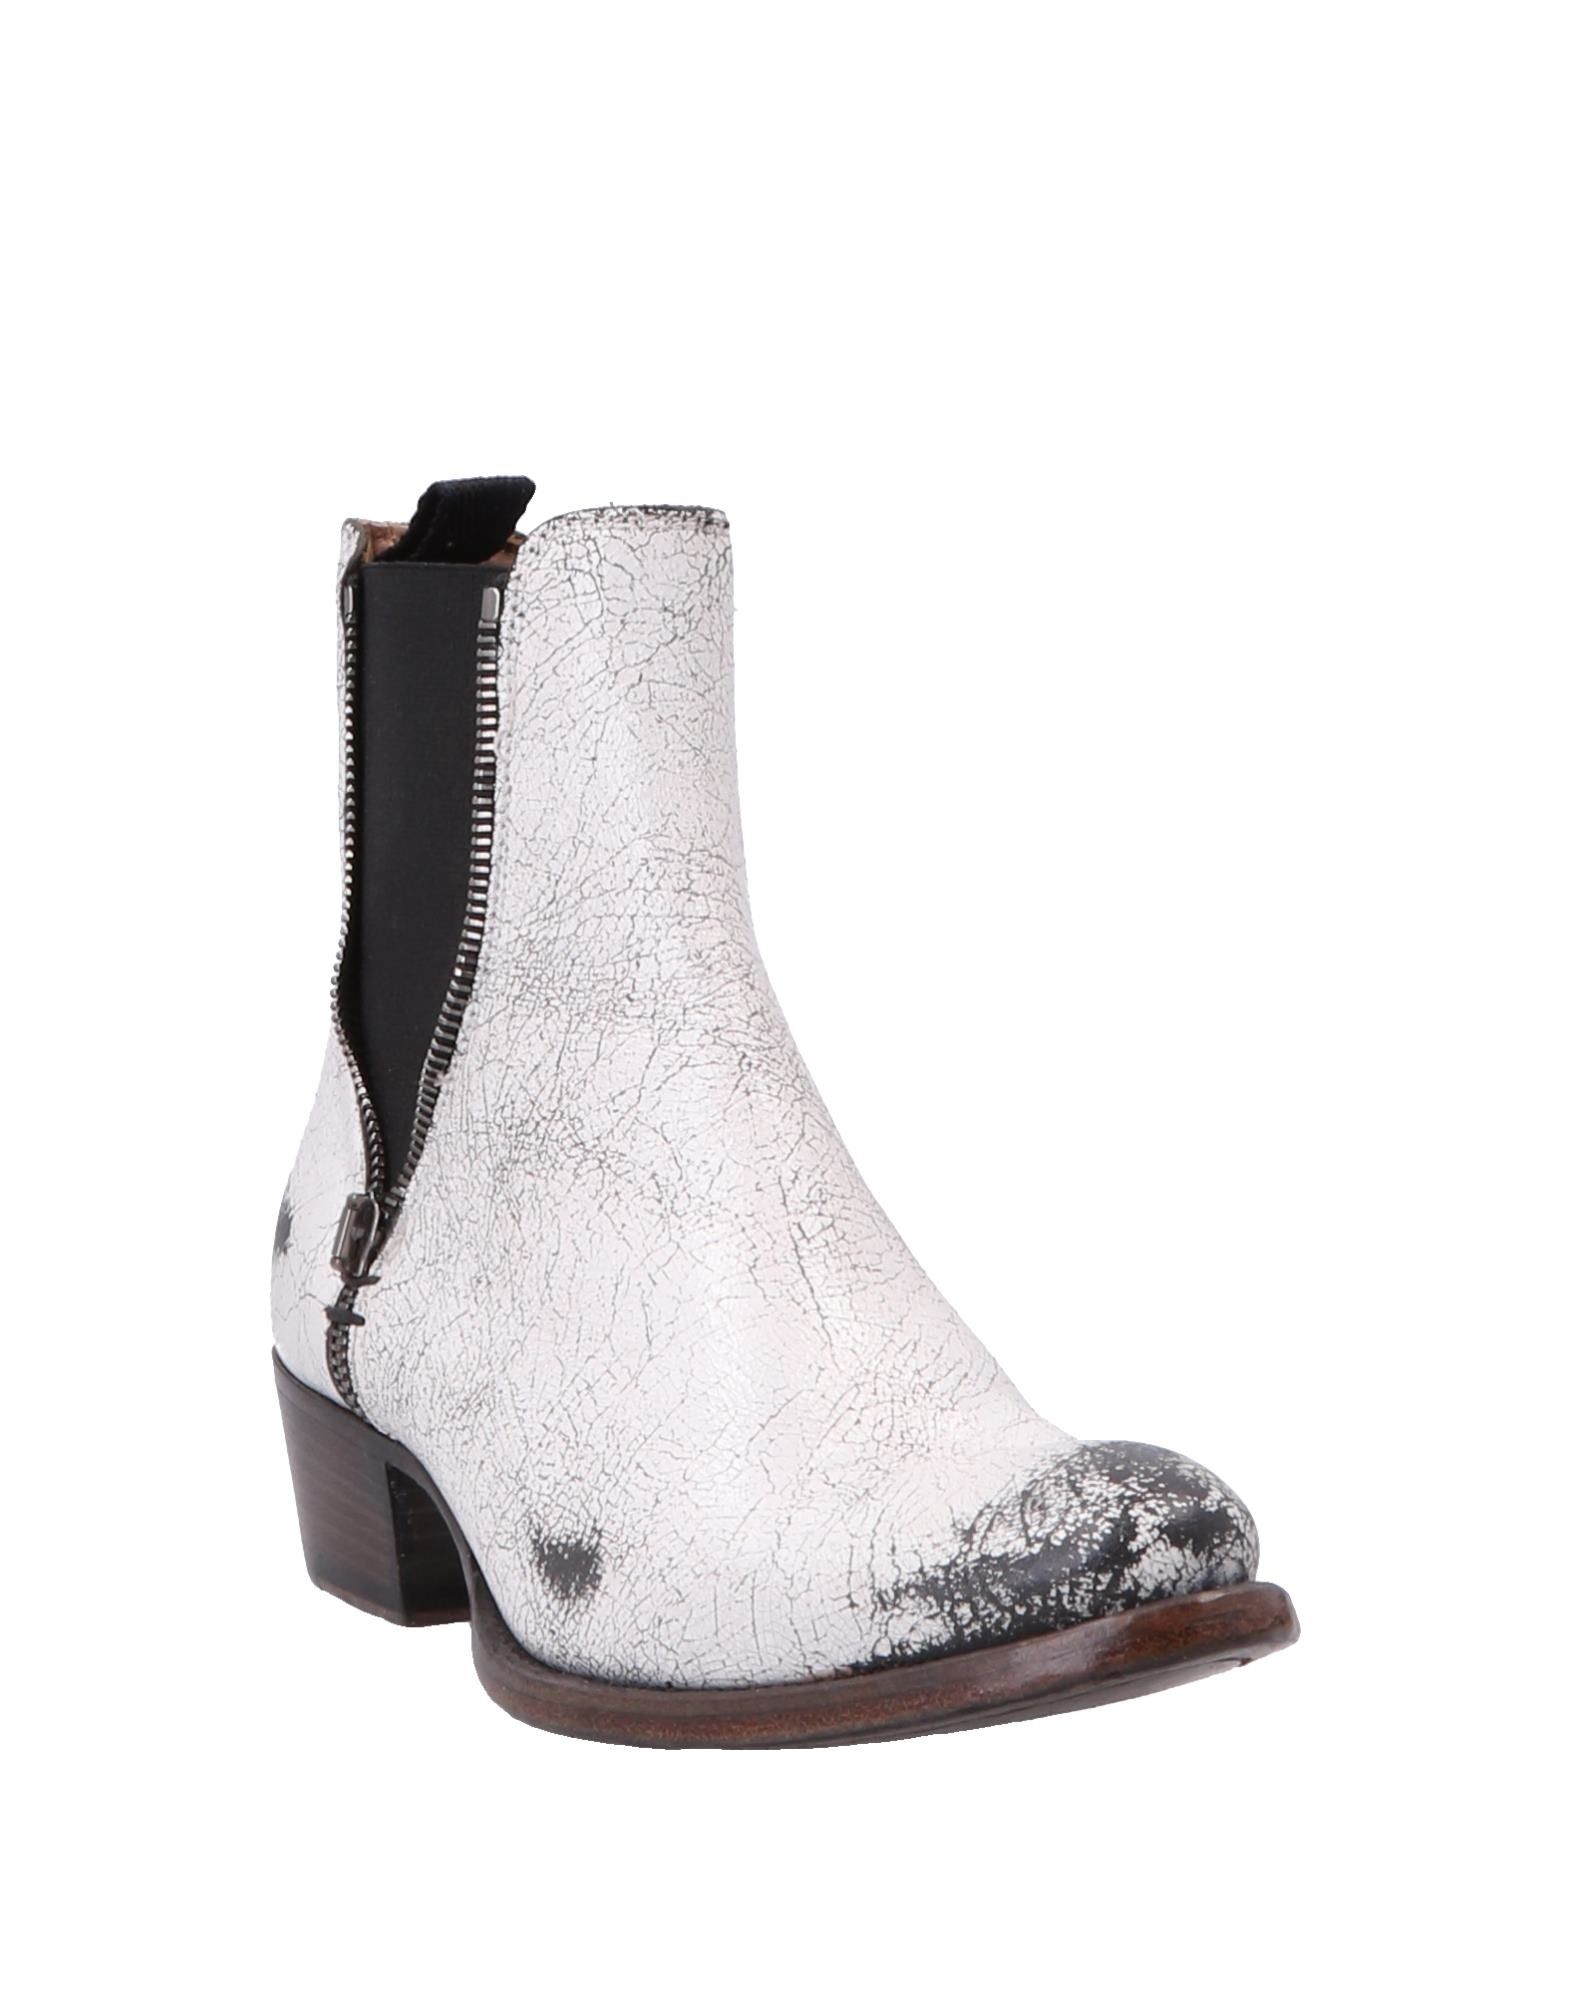 Pantanetti Ankle Ankle Ankle Boot - Women Pantanetti Ankle Boots online on  United Kingdom - 11549262KI 5f0cbb